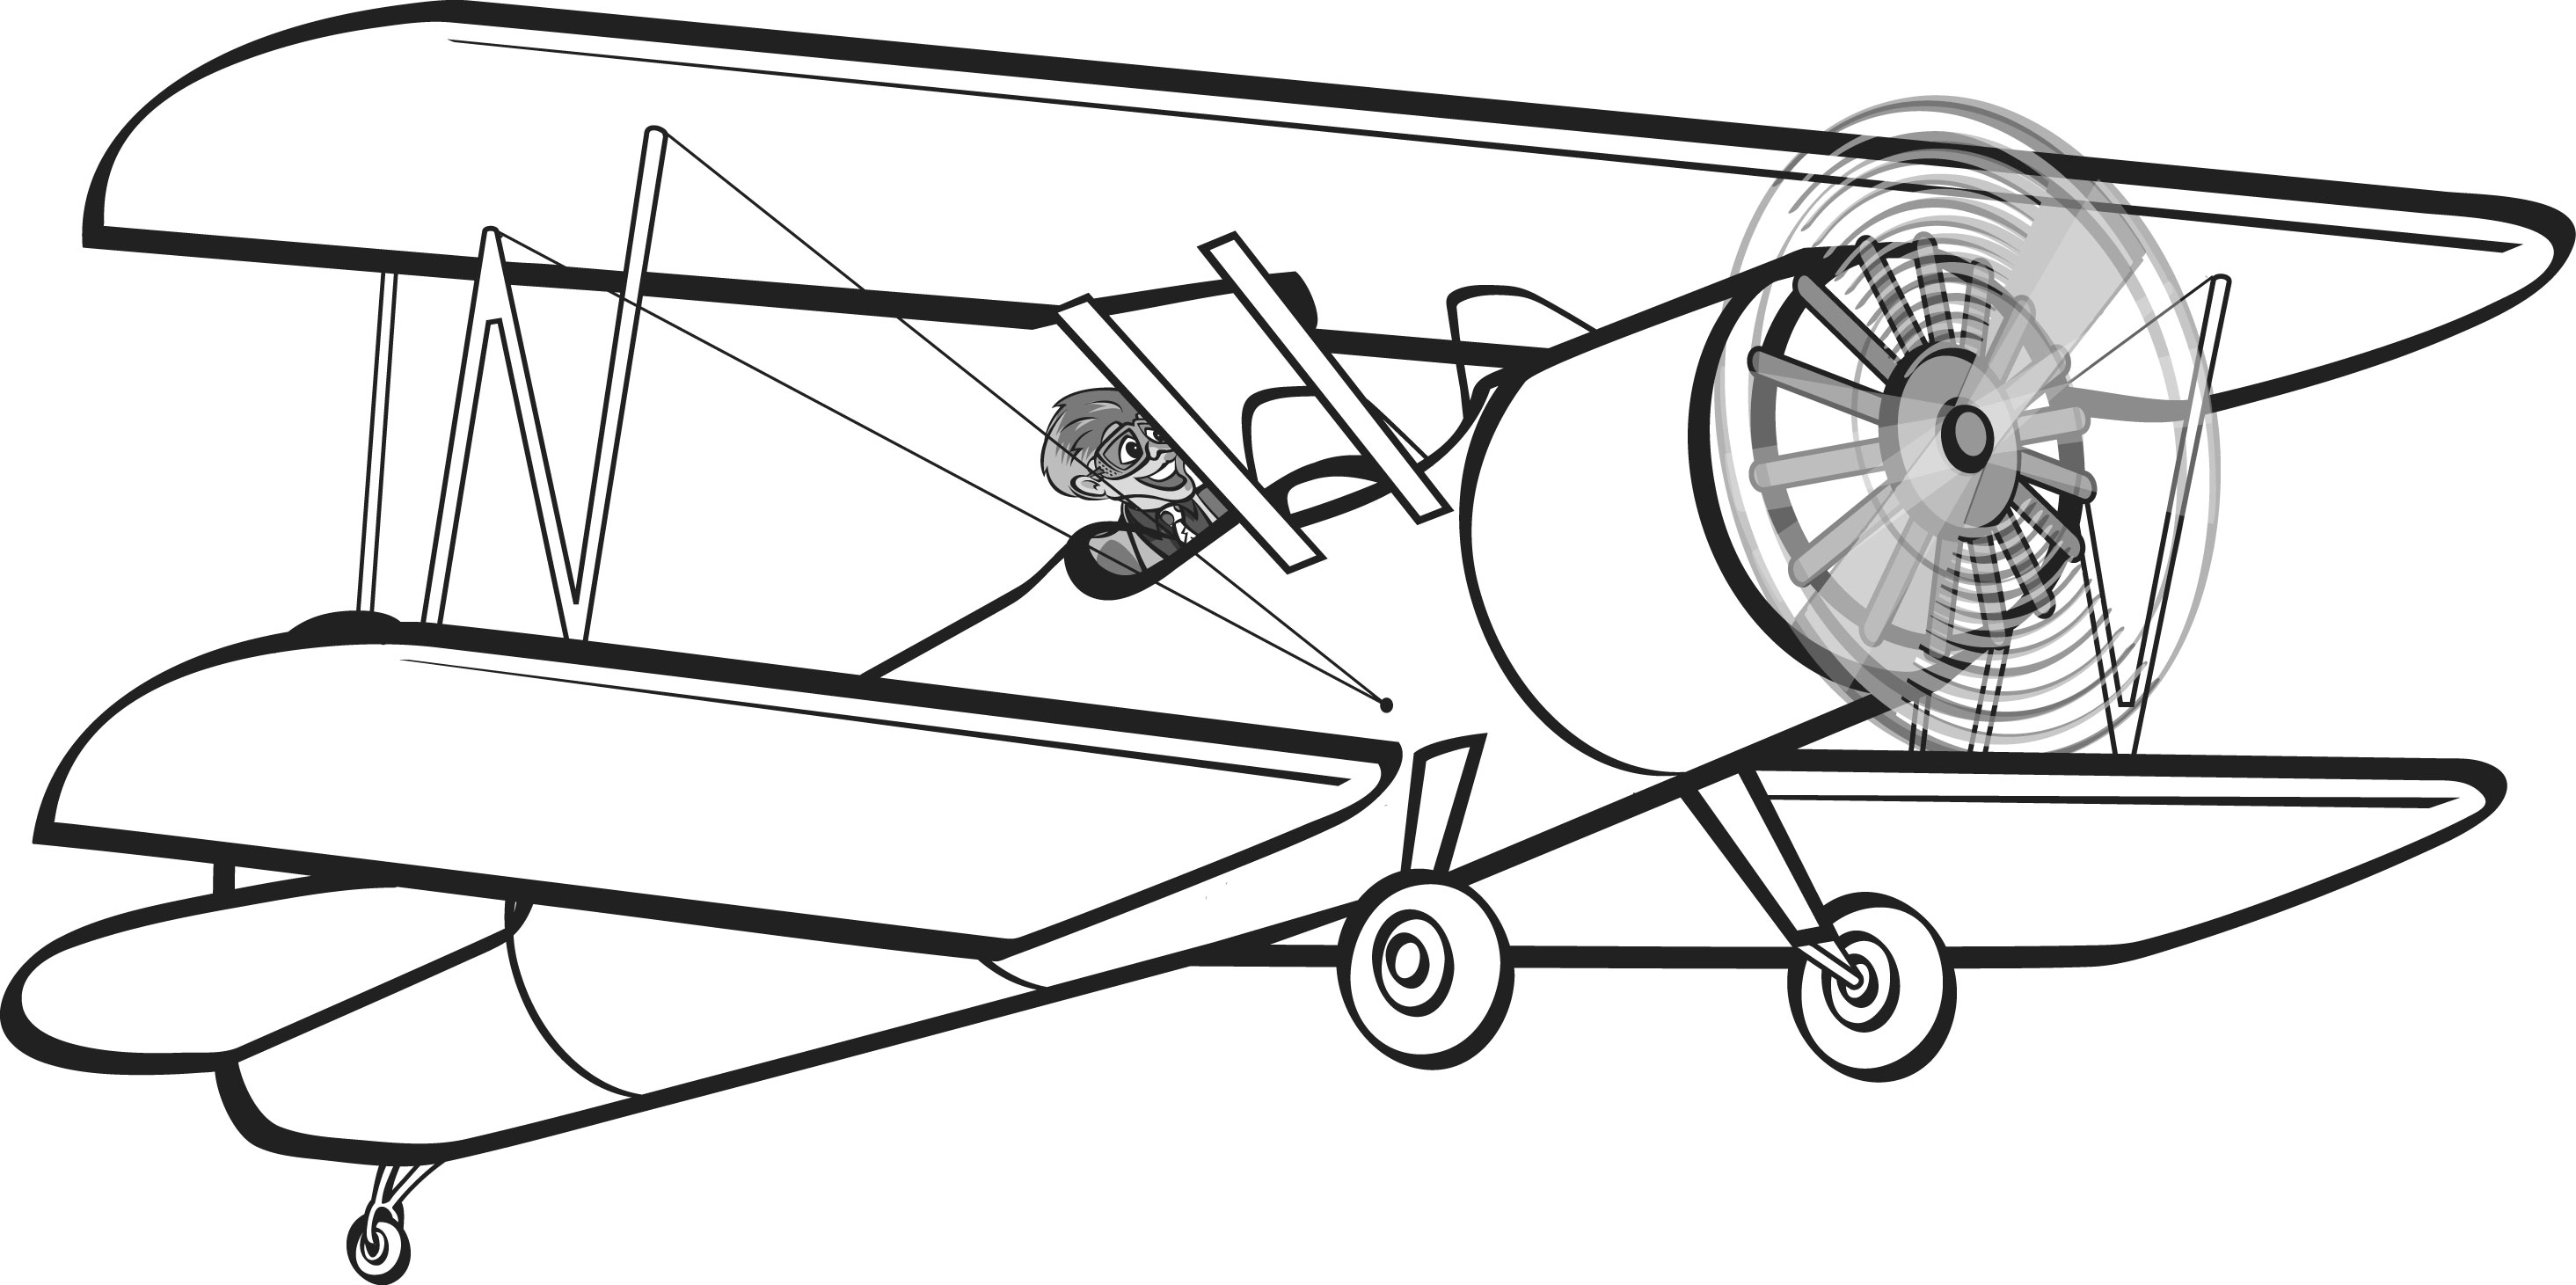 Biplane clipart old fashioned. Image of red baron